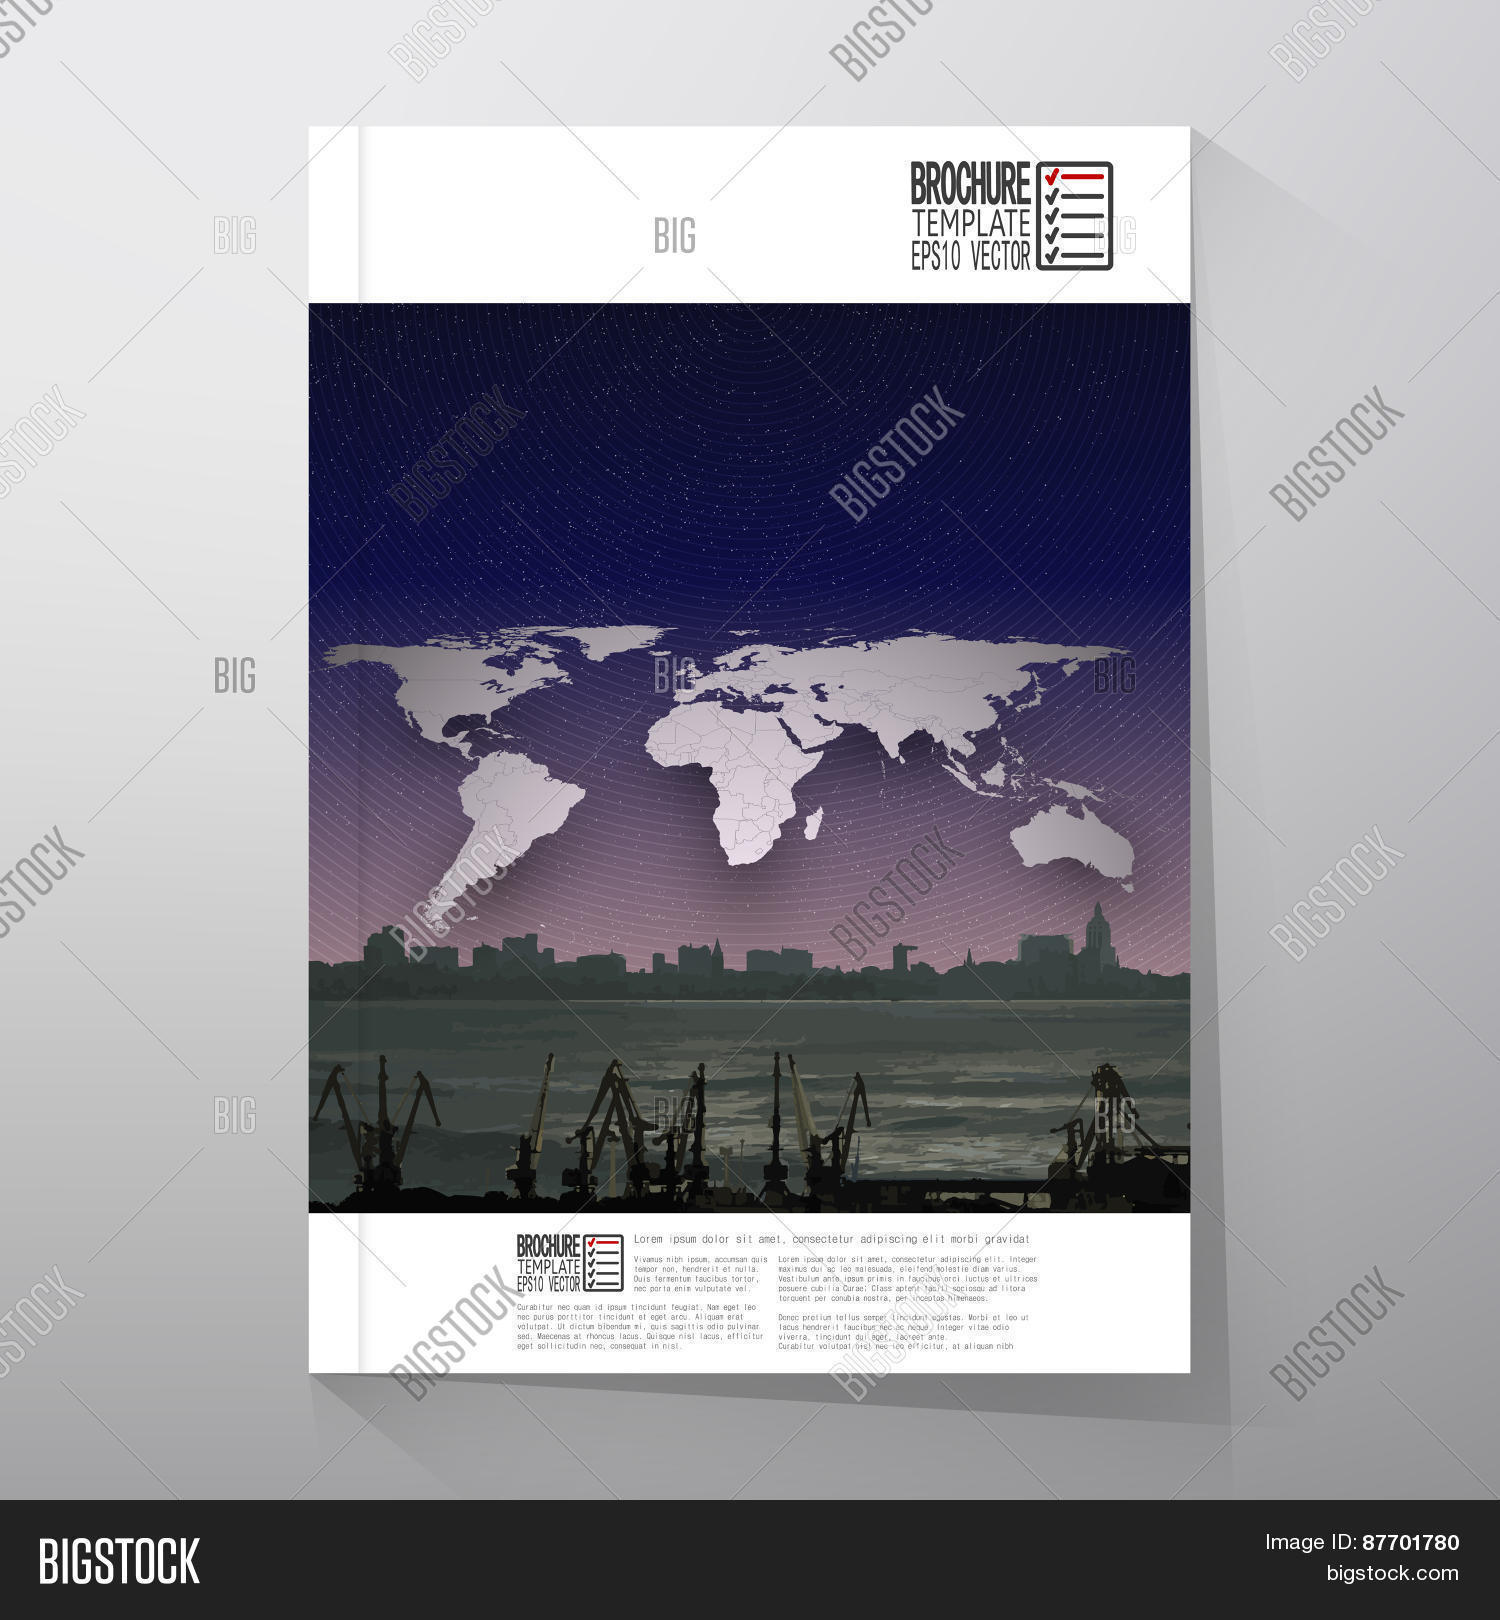 Shipyard city vector photo free trial bigstock shipyard and city landscape night design world map vector brochure flyer or gumiabroncs Choice Image